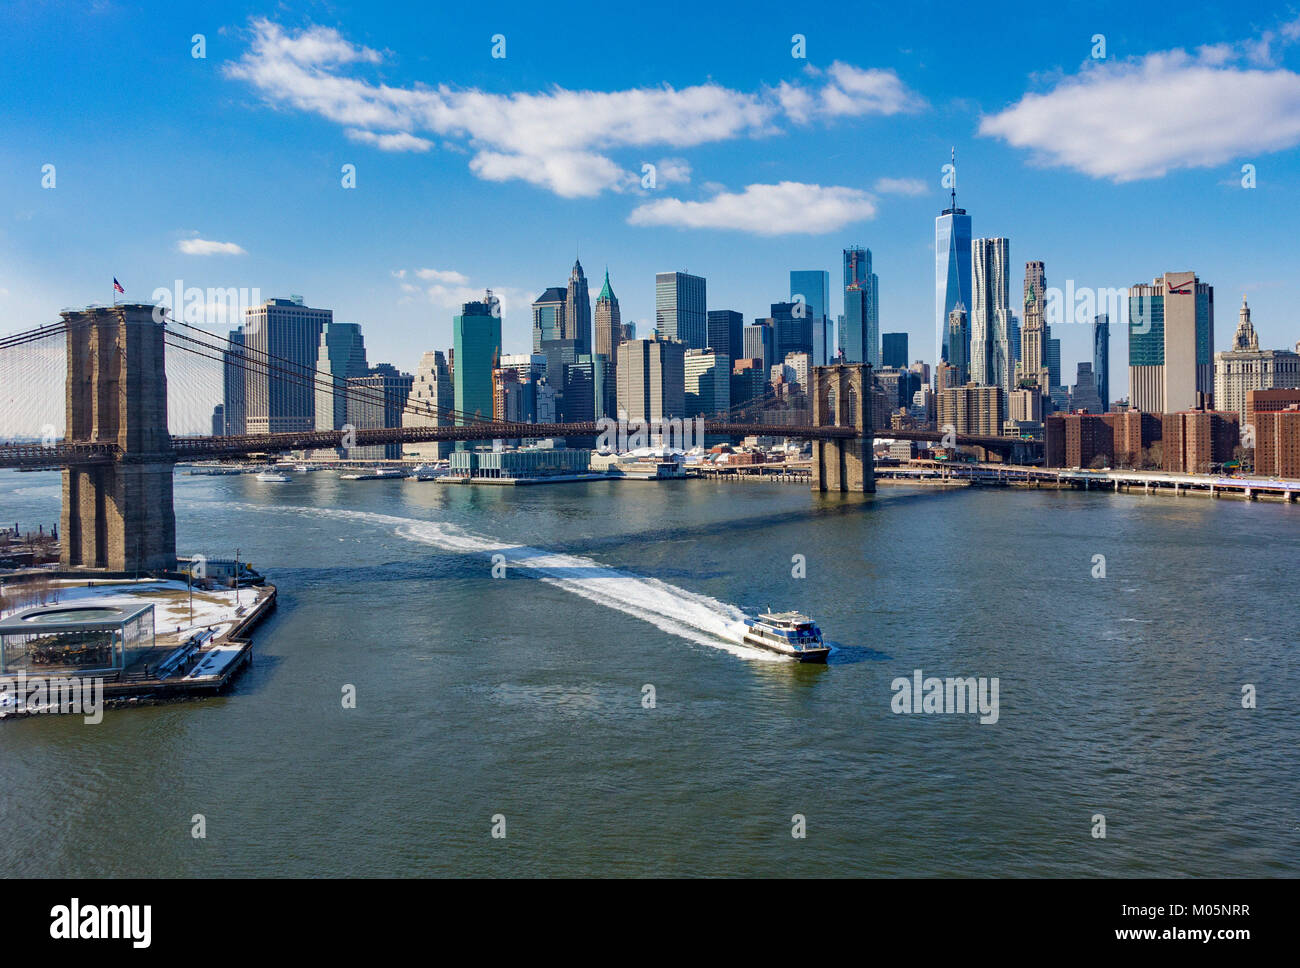 The Brooklyn Bridge and Lower Manhattan skyline seen from across the East River in winter - Stock Image